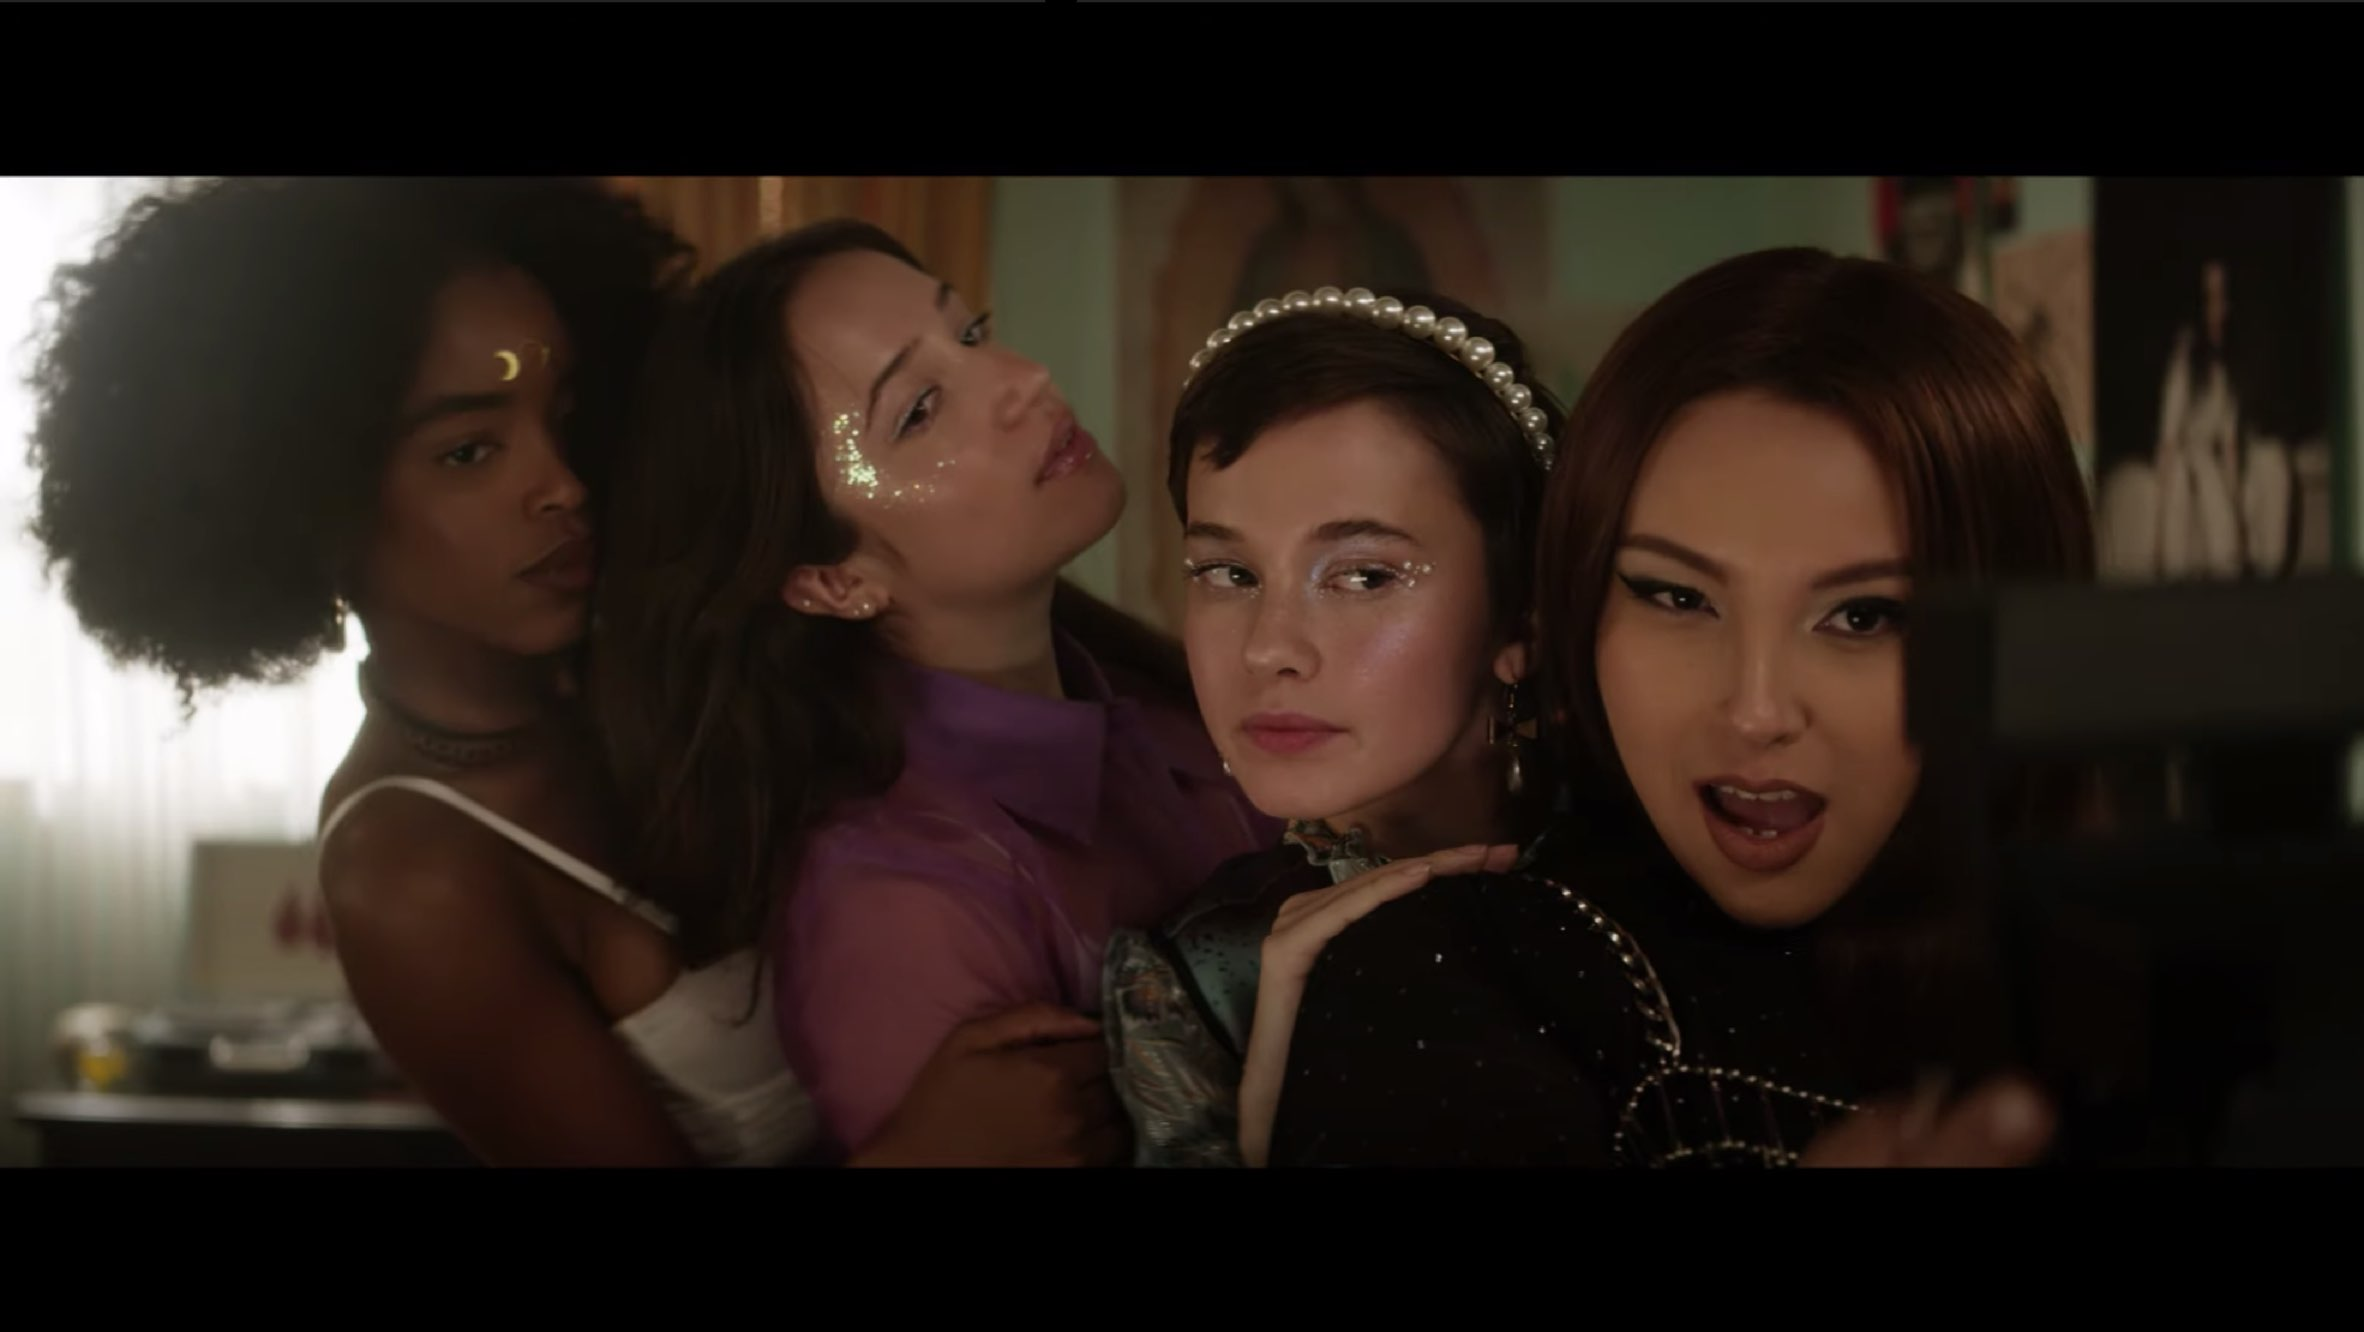 'The Craft' Sequel Trailer Reveals New Coven of Witches